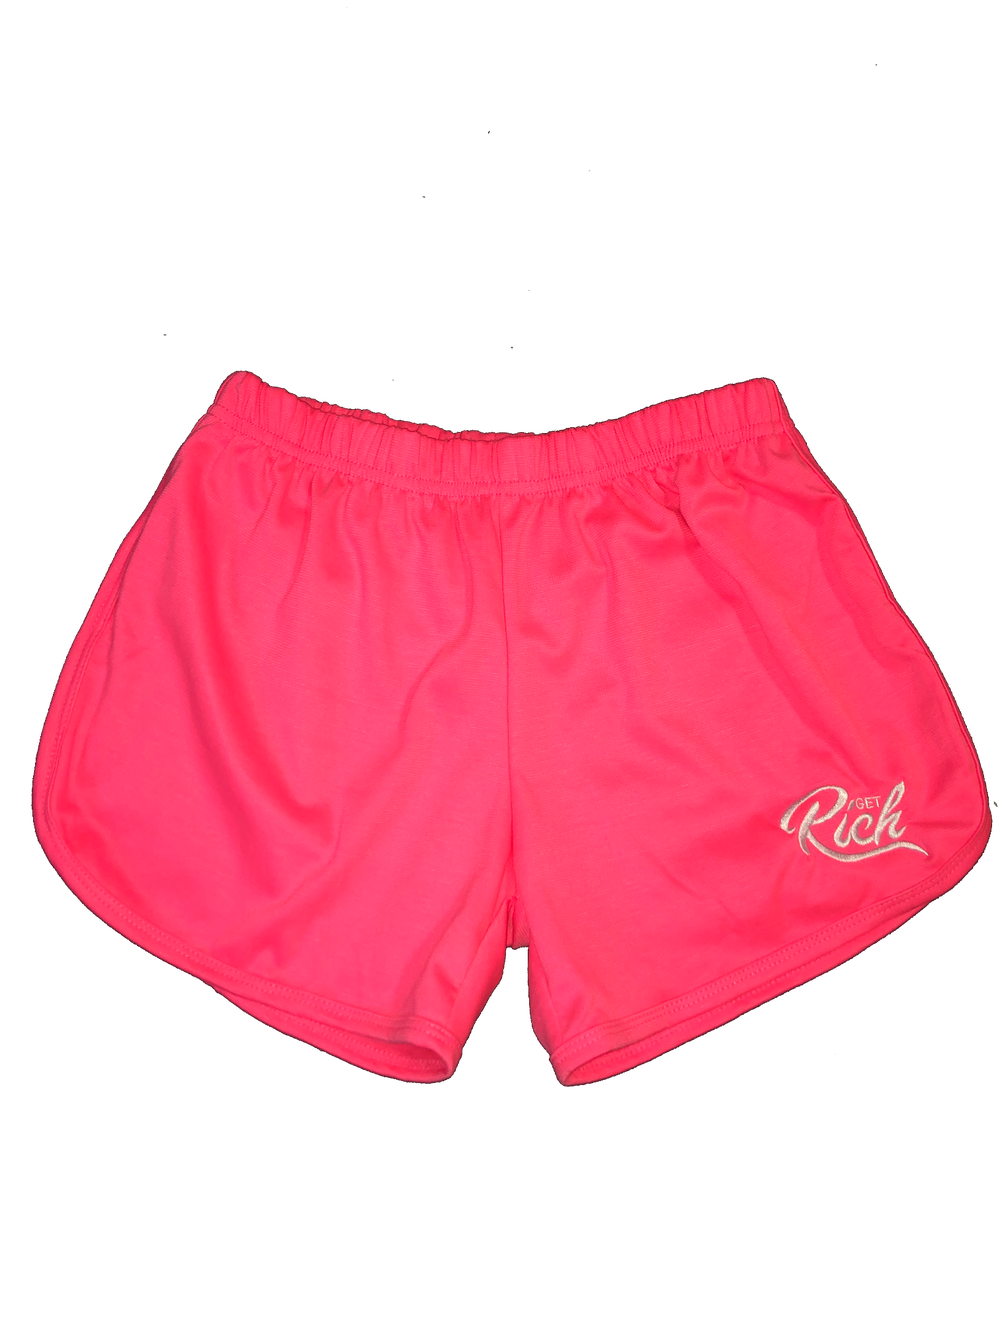 Image of Get Rich - Women's Shorts (Pink)